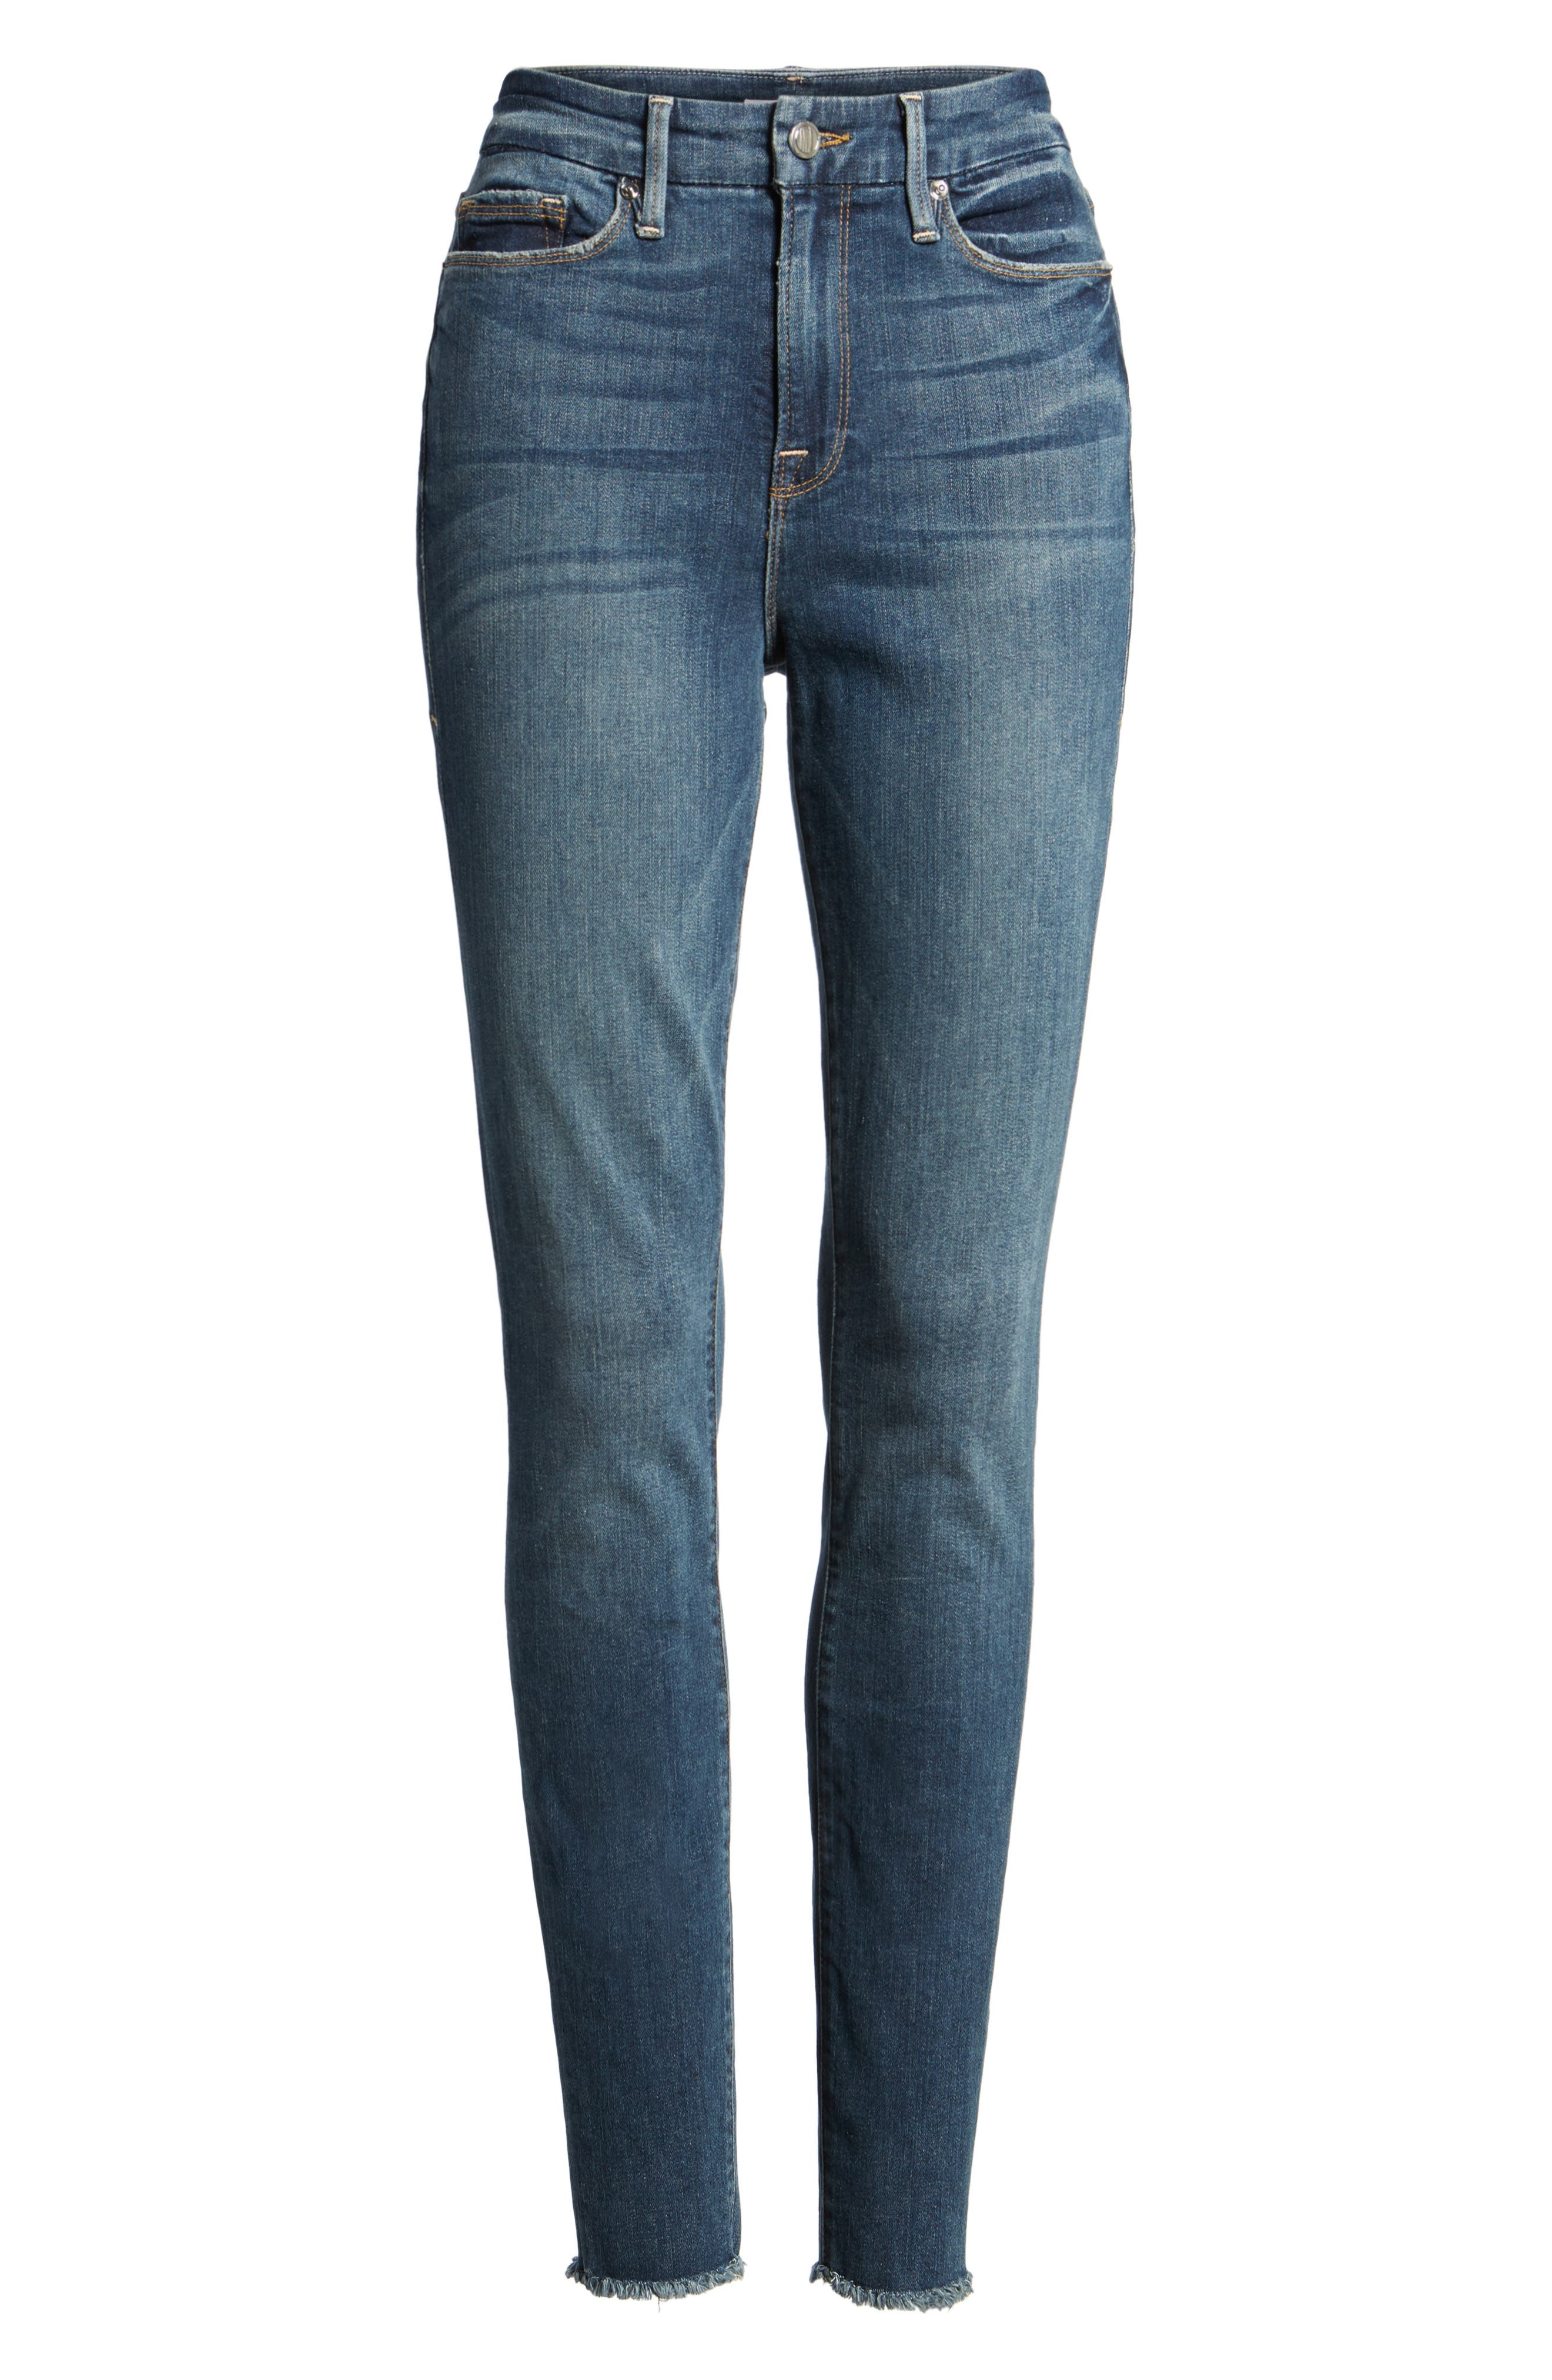 Good Legs High Rise Ripped Skinny Jeans,                         Main,                         color, 401